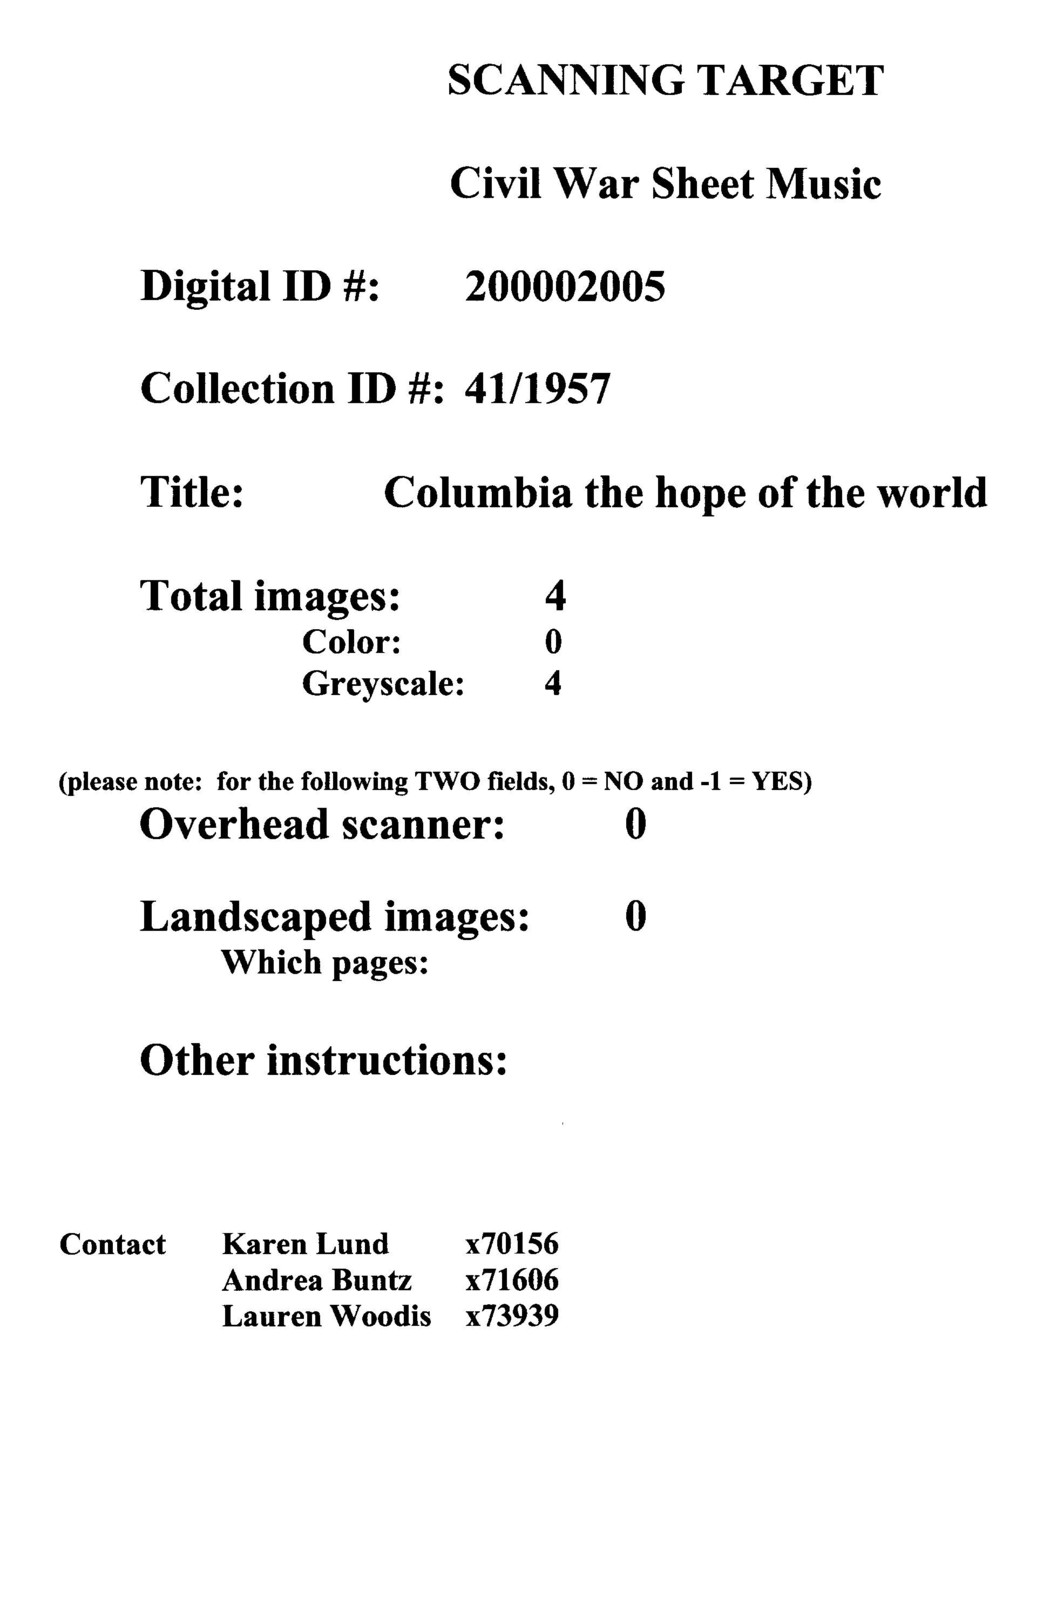 Columbia the hope of the world